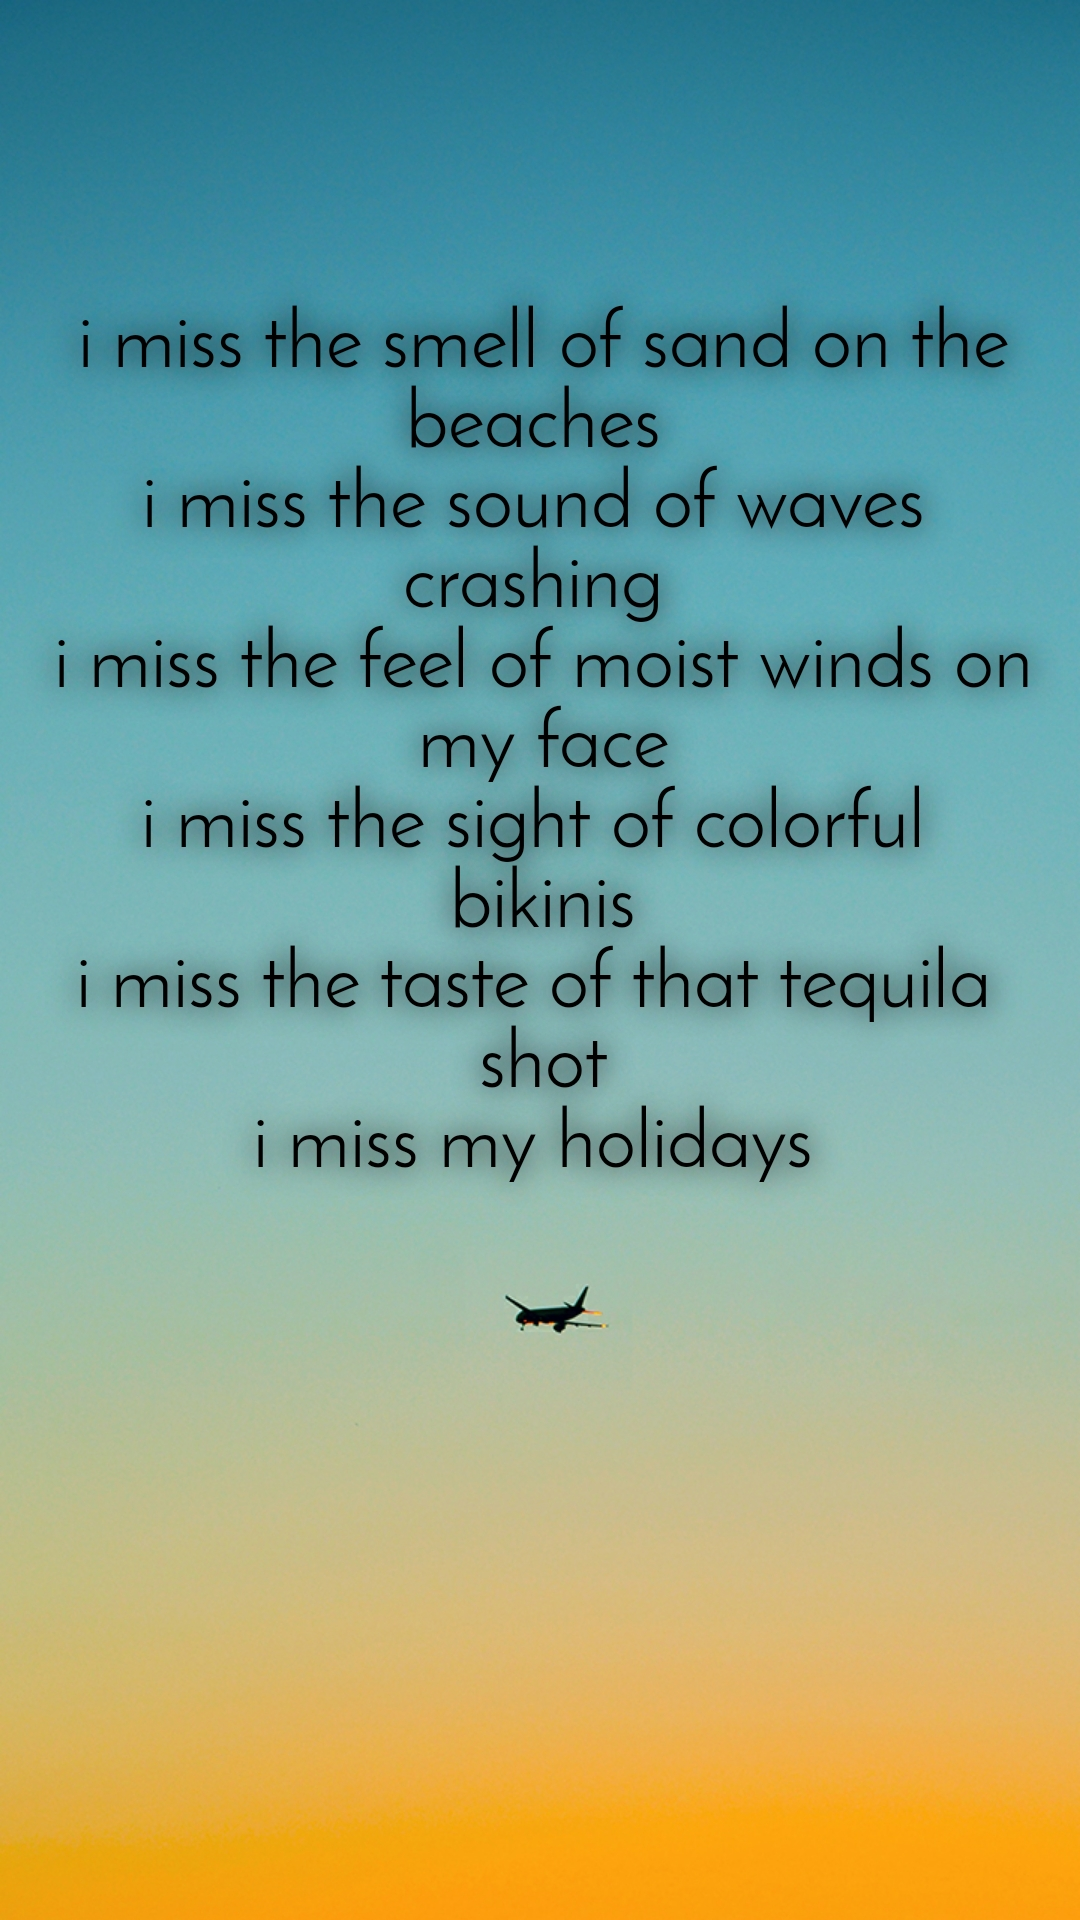 i miss the smell of sand on the beaches  i miss the sound of waves  crashing  i miss the feel of moist winds on my face i miss the sight of colorful  bikinis i miss the taste of that tequila  shot i miss my holidays